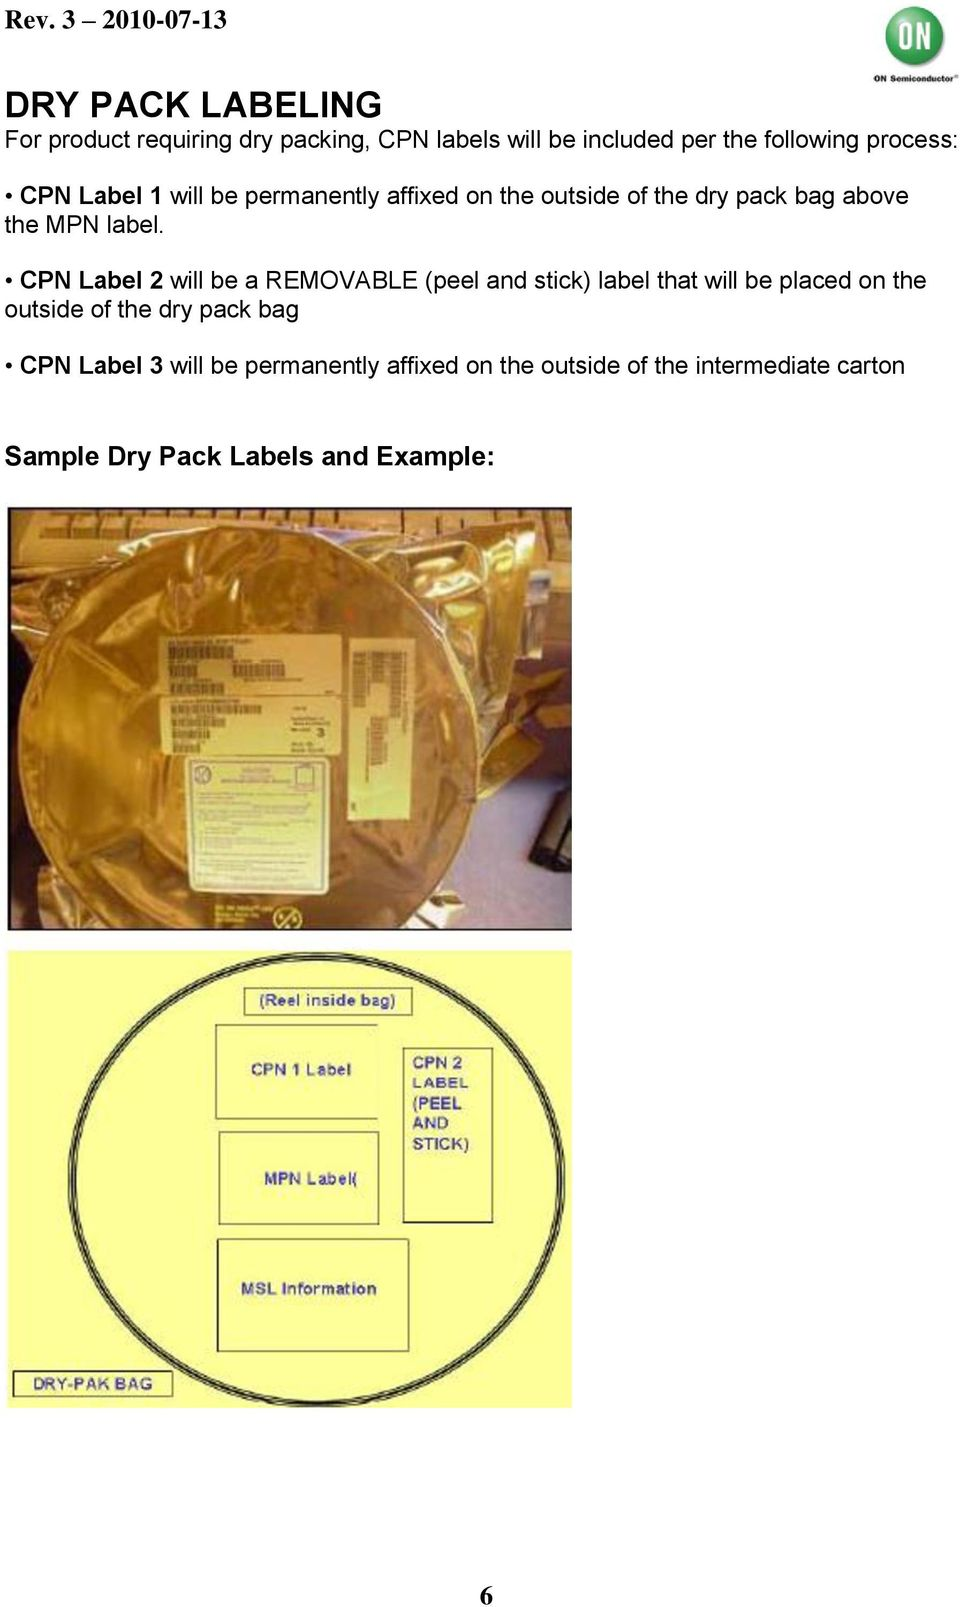 CPN Label 2 will be a REMOVABLE (peel and stick) label that will be placed on the outside of the dry pack